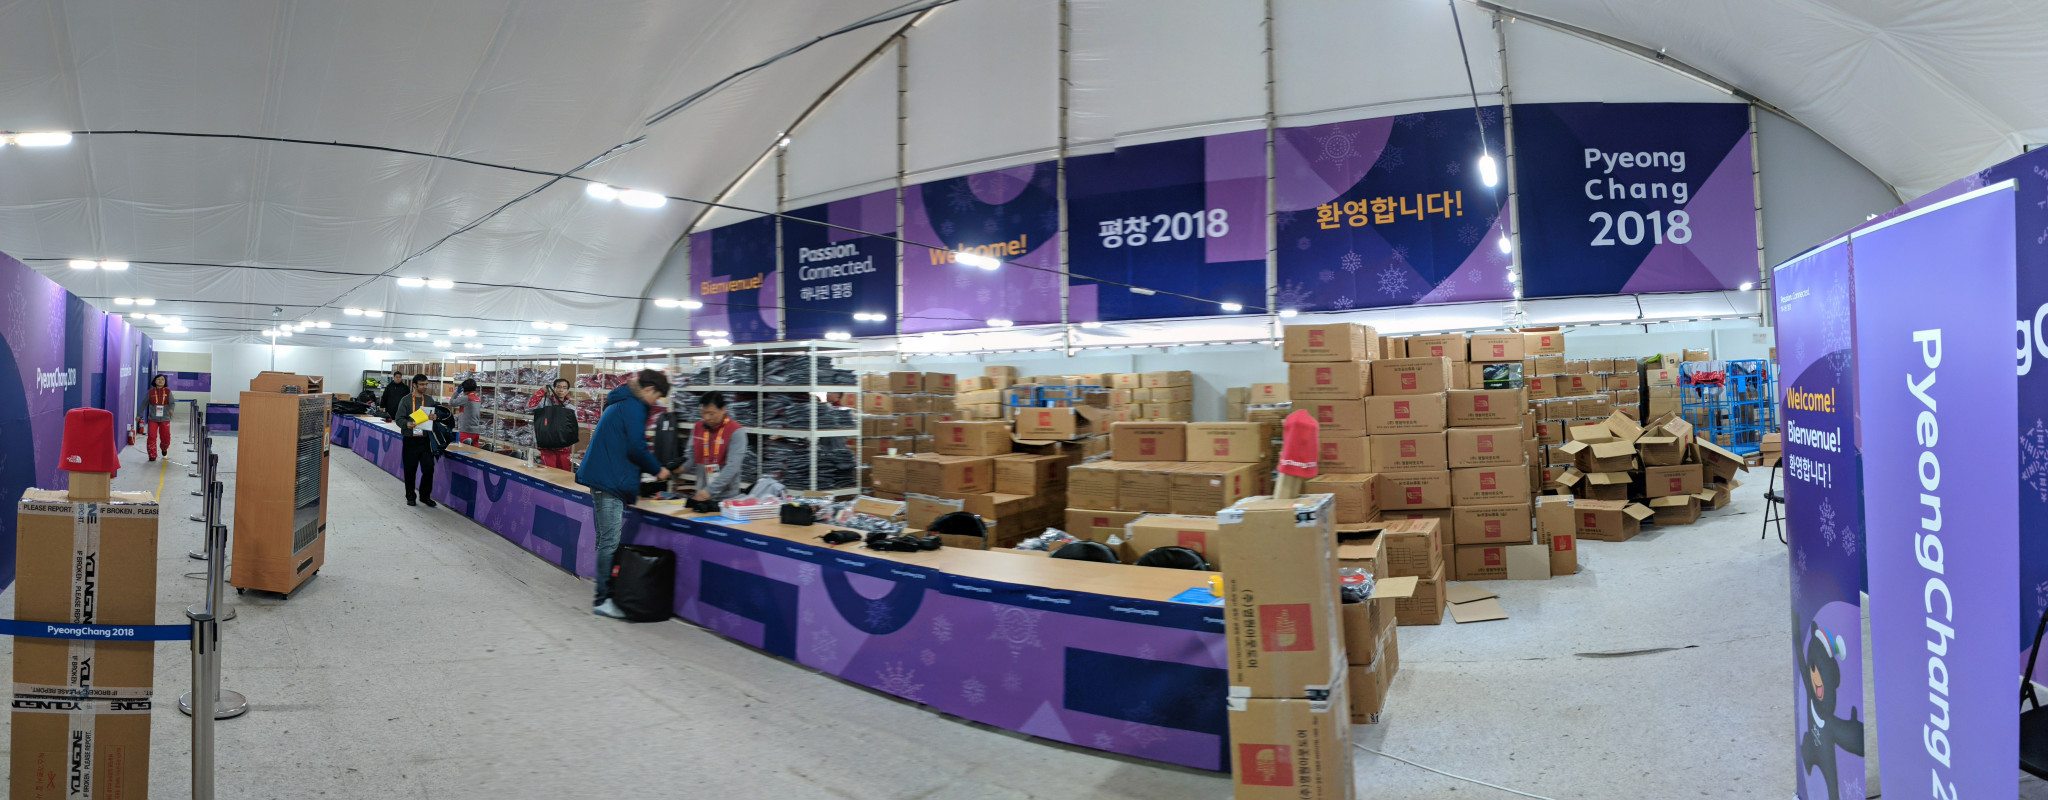 The Uniform and Accreditation Center, located on the site of a former thermal power plant, will be where volunteers and staff go to collect their kit and credentials for Beijing 2022 ©Pyeongchang 2018